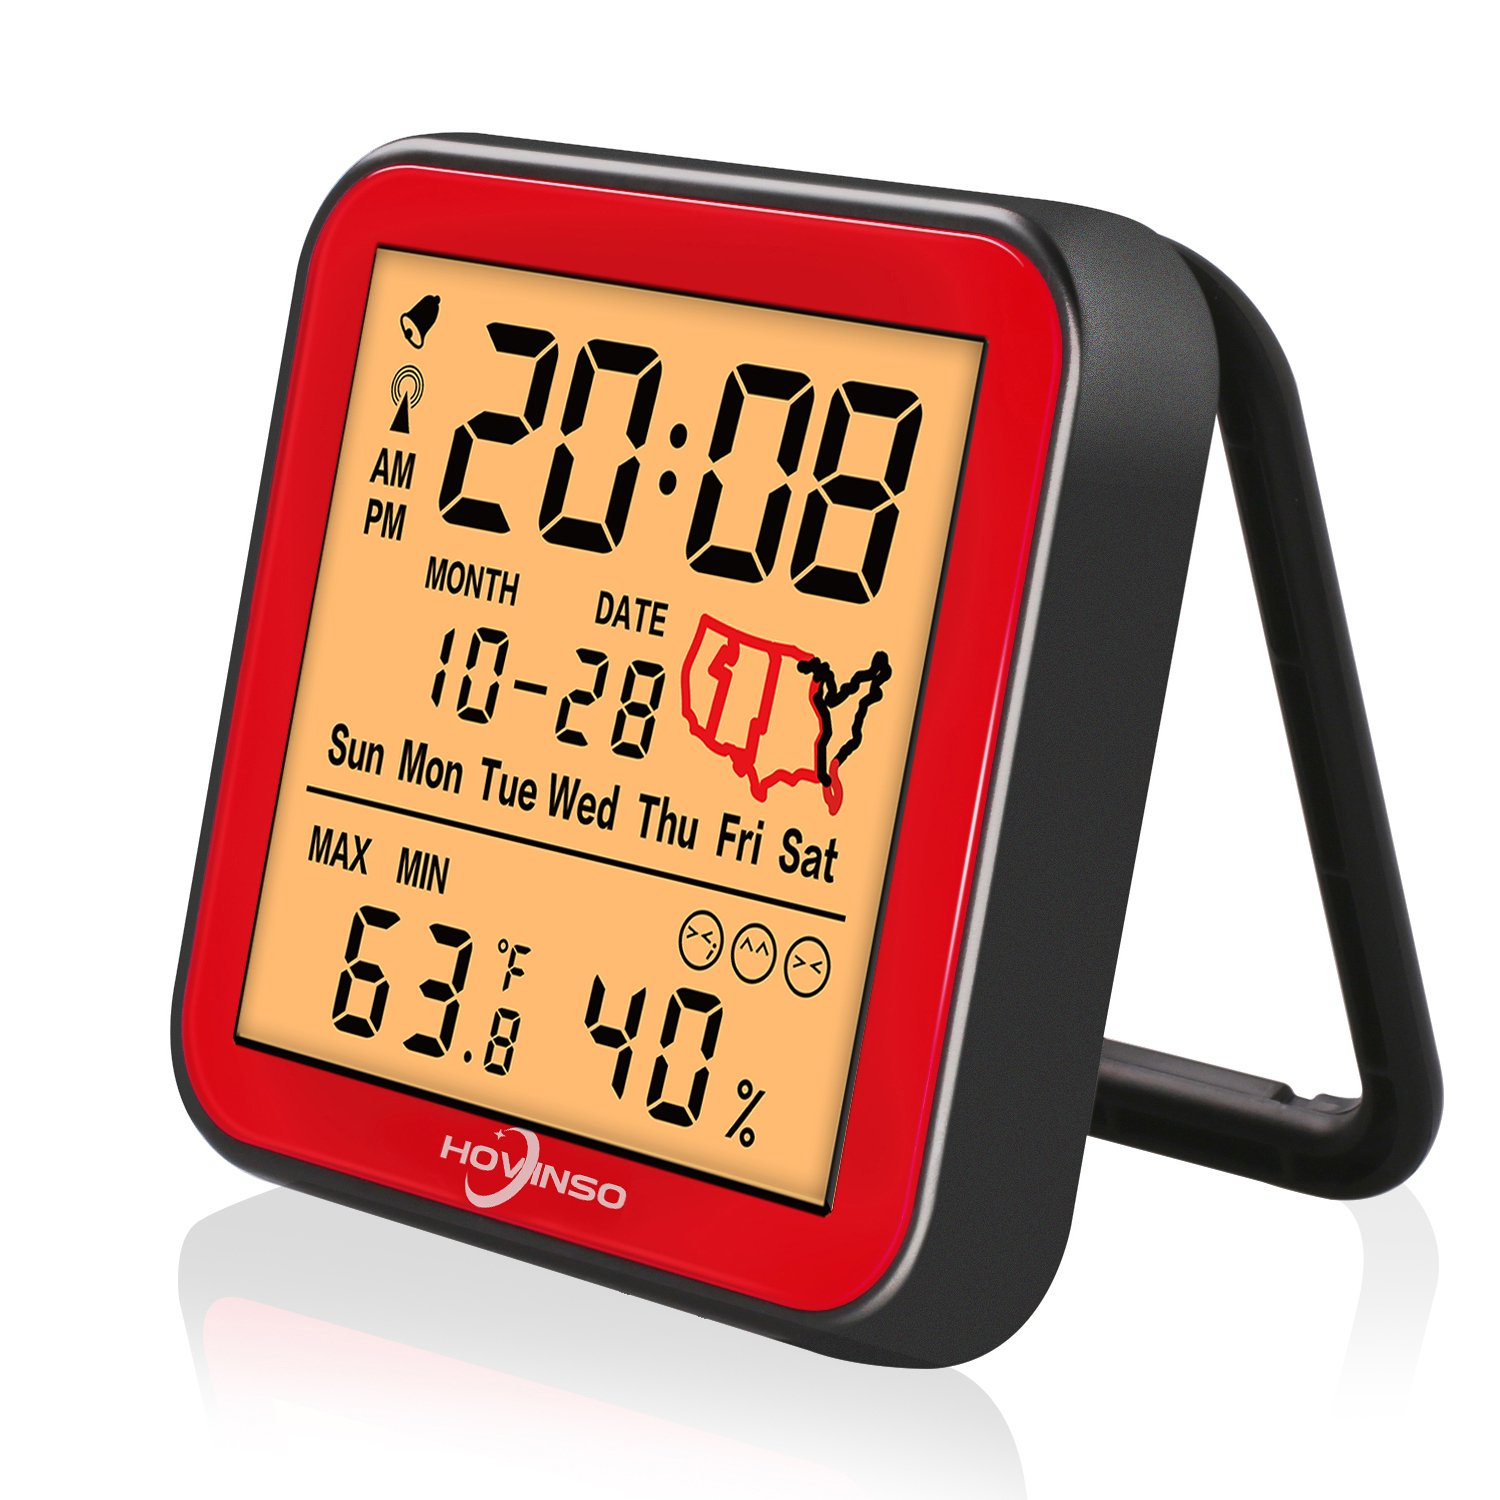 Hovinso Weather Station Clock with Temperature and Humidity Monitor, Indoor Wireless Radio Atomic Alarm Clock for Home Bedroom by Hovinso (Image #1)